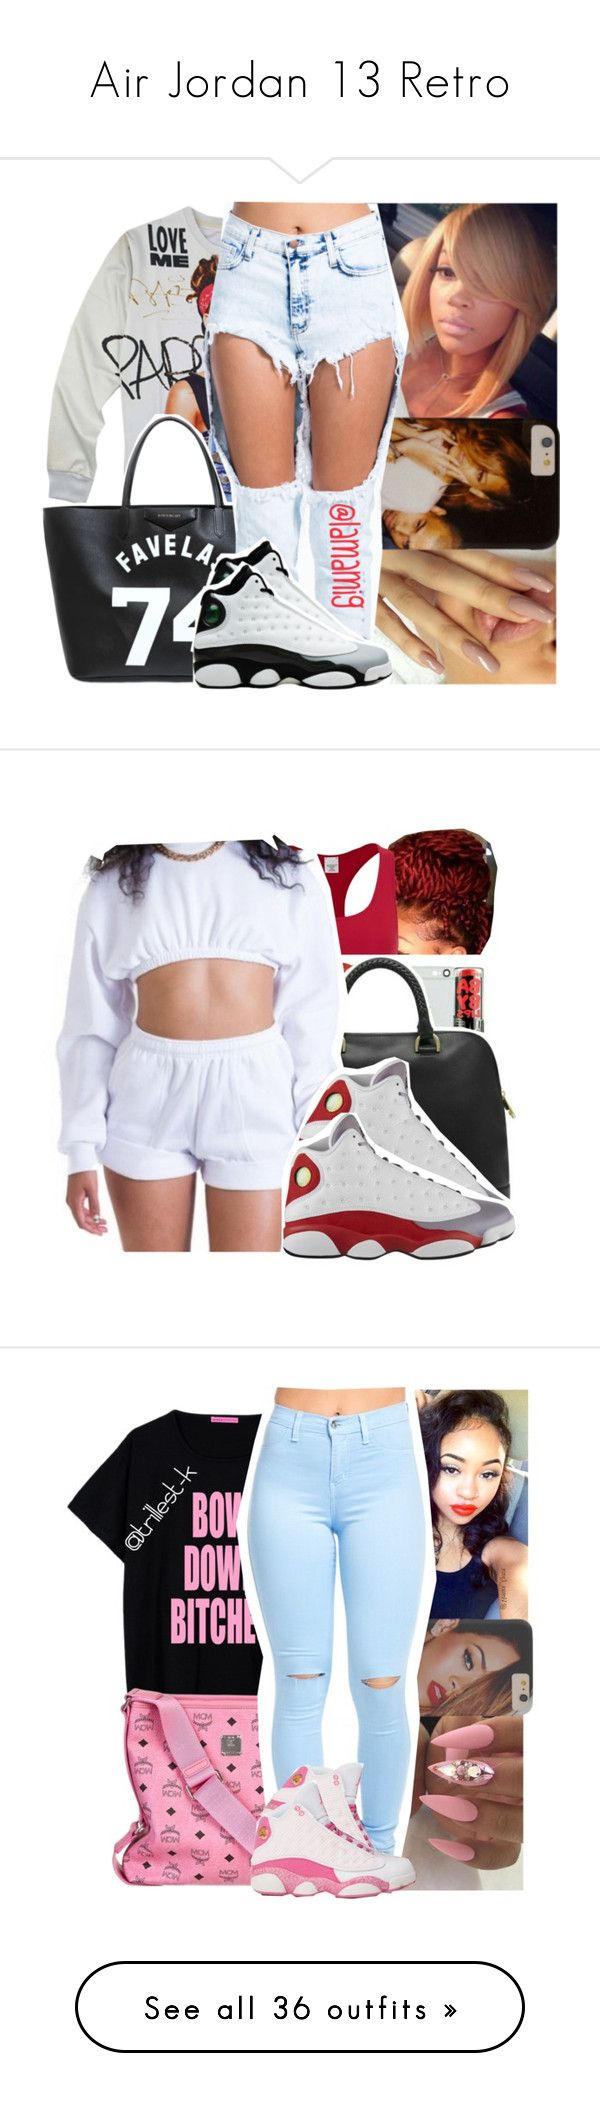 """""""Air Jordan 13 Retro"""" by nasciaboo ❤ liked on Polyvore featuring Givenchy, Retrò, Calvin Klein, grey, redd, whiteee, MCM, Michael Kors, WearAll and beauty"""